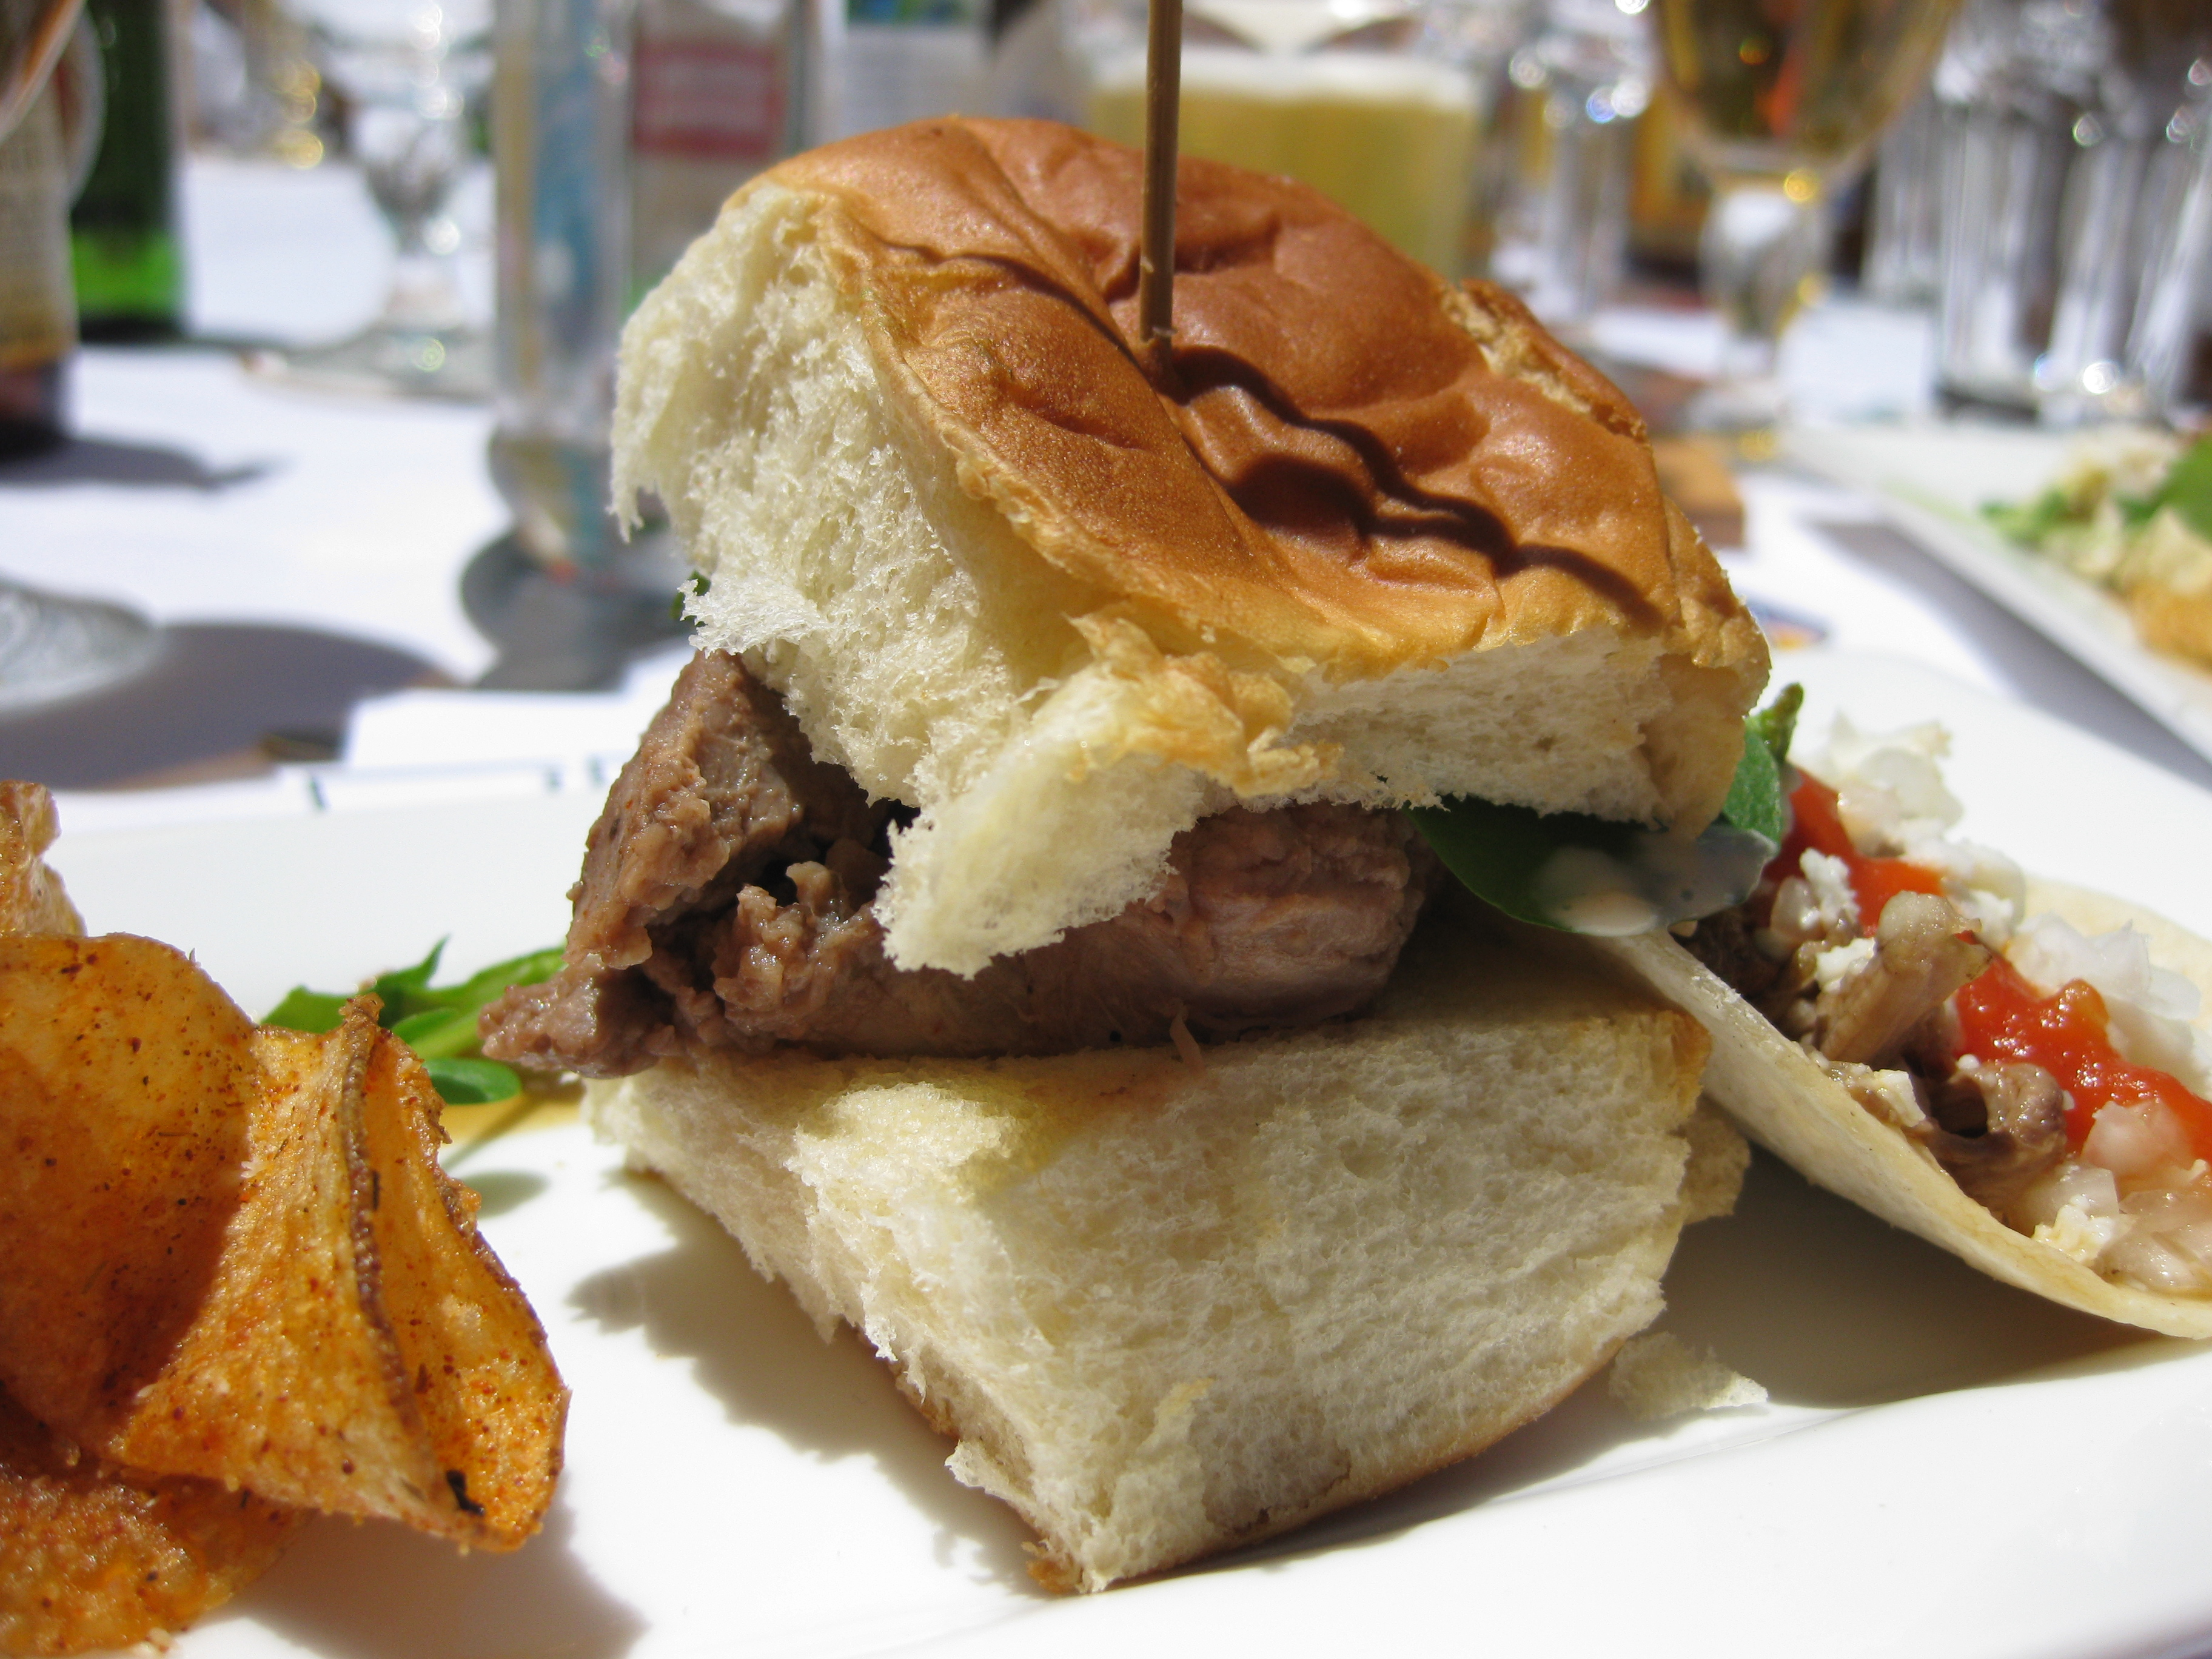 Venison slider with yuzu aioli on Hawaiian bread.